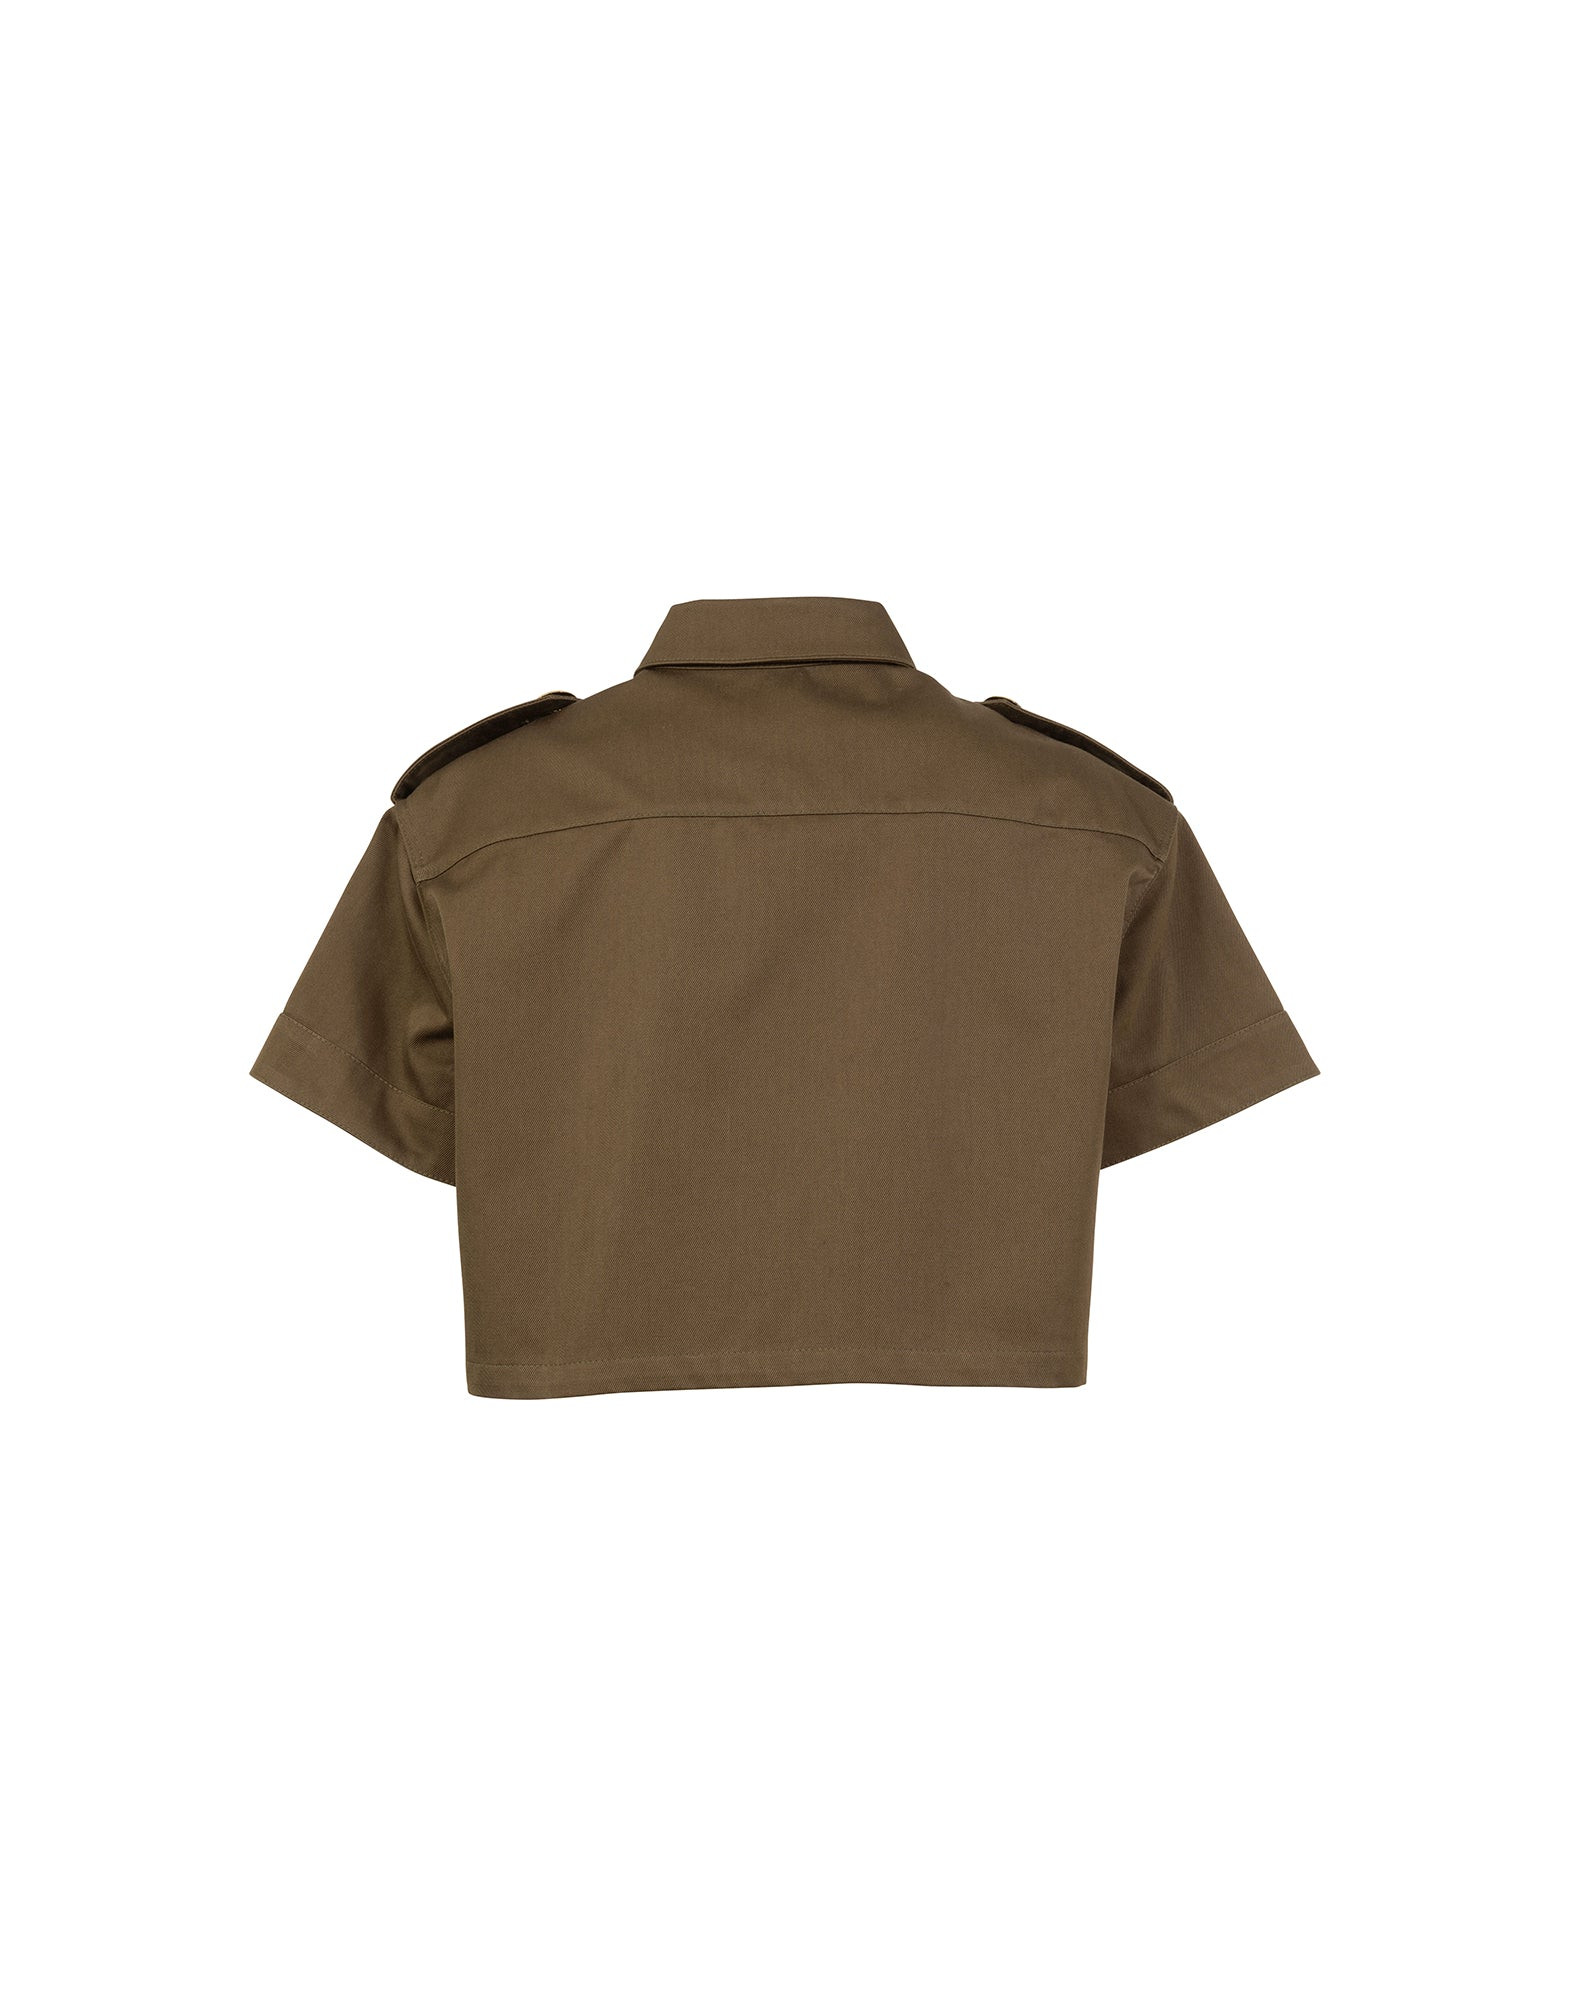 Cropped shirt in canvas - NEW COLLECTION